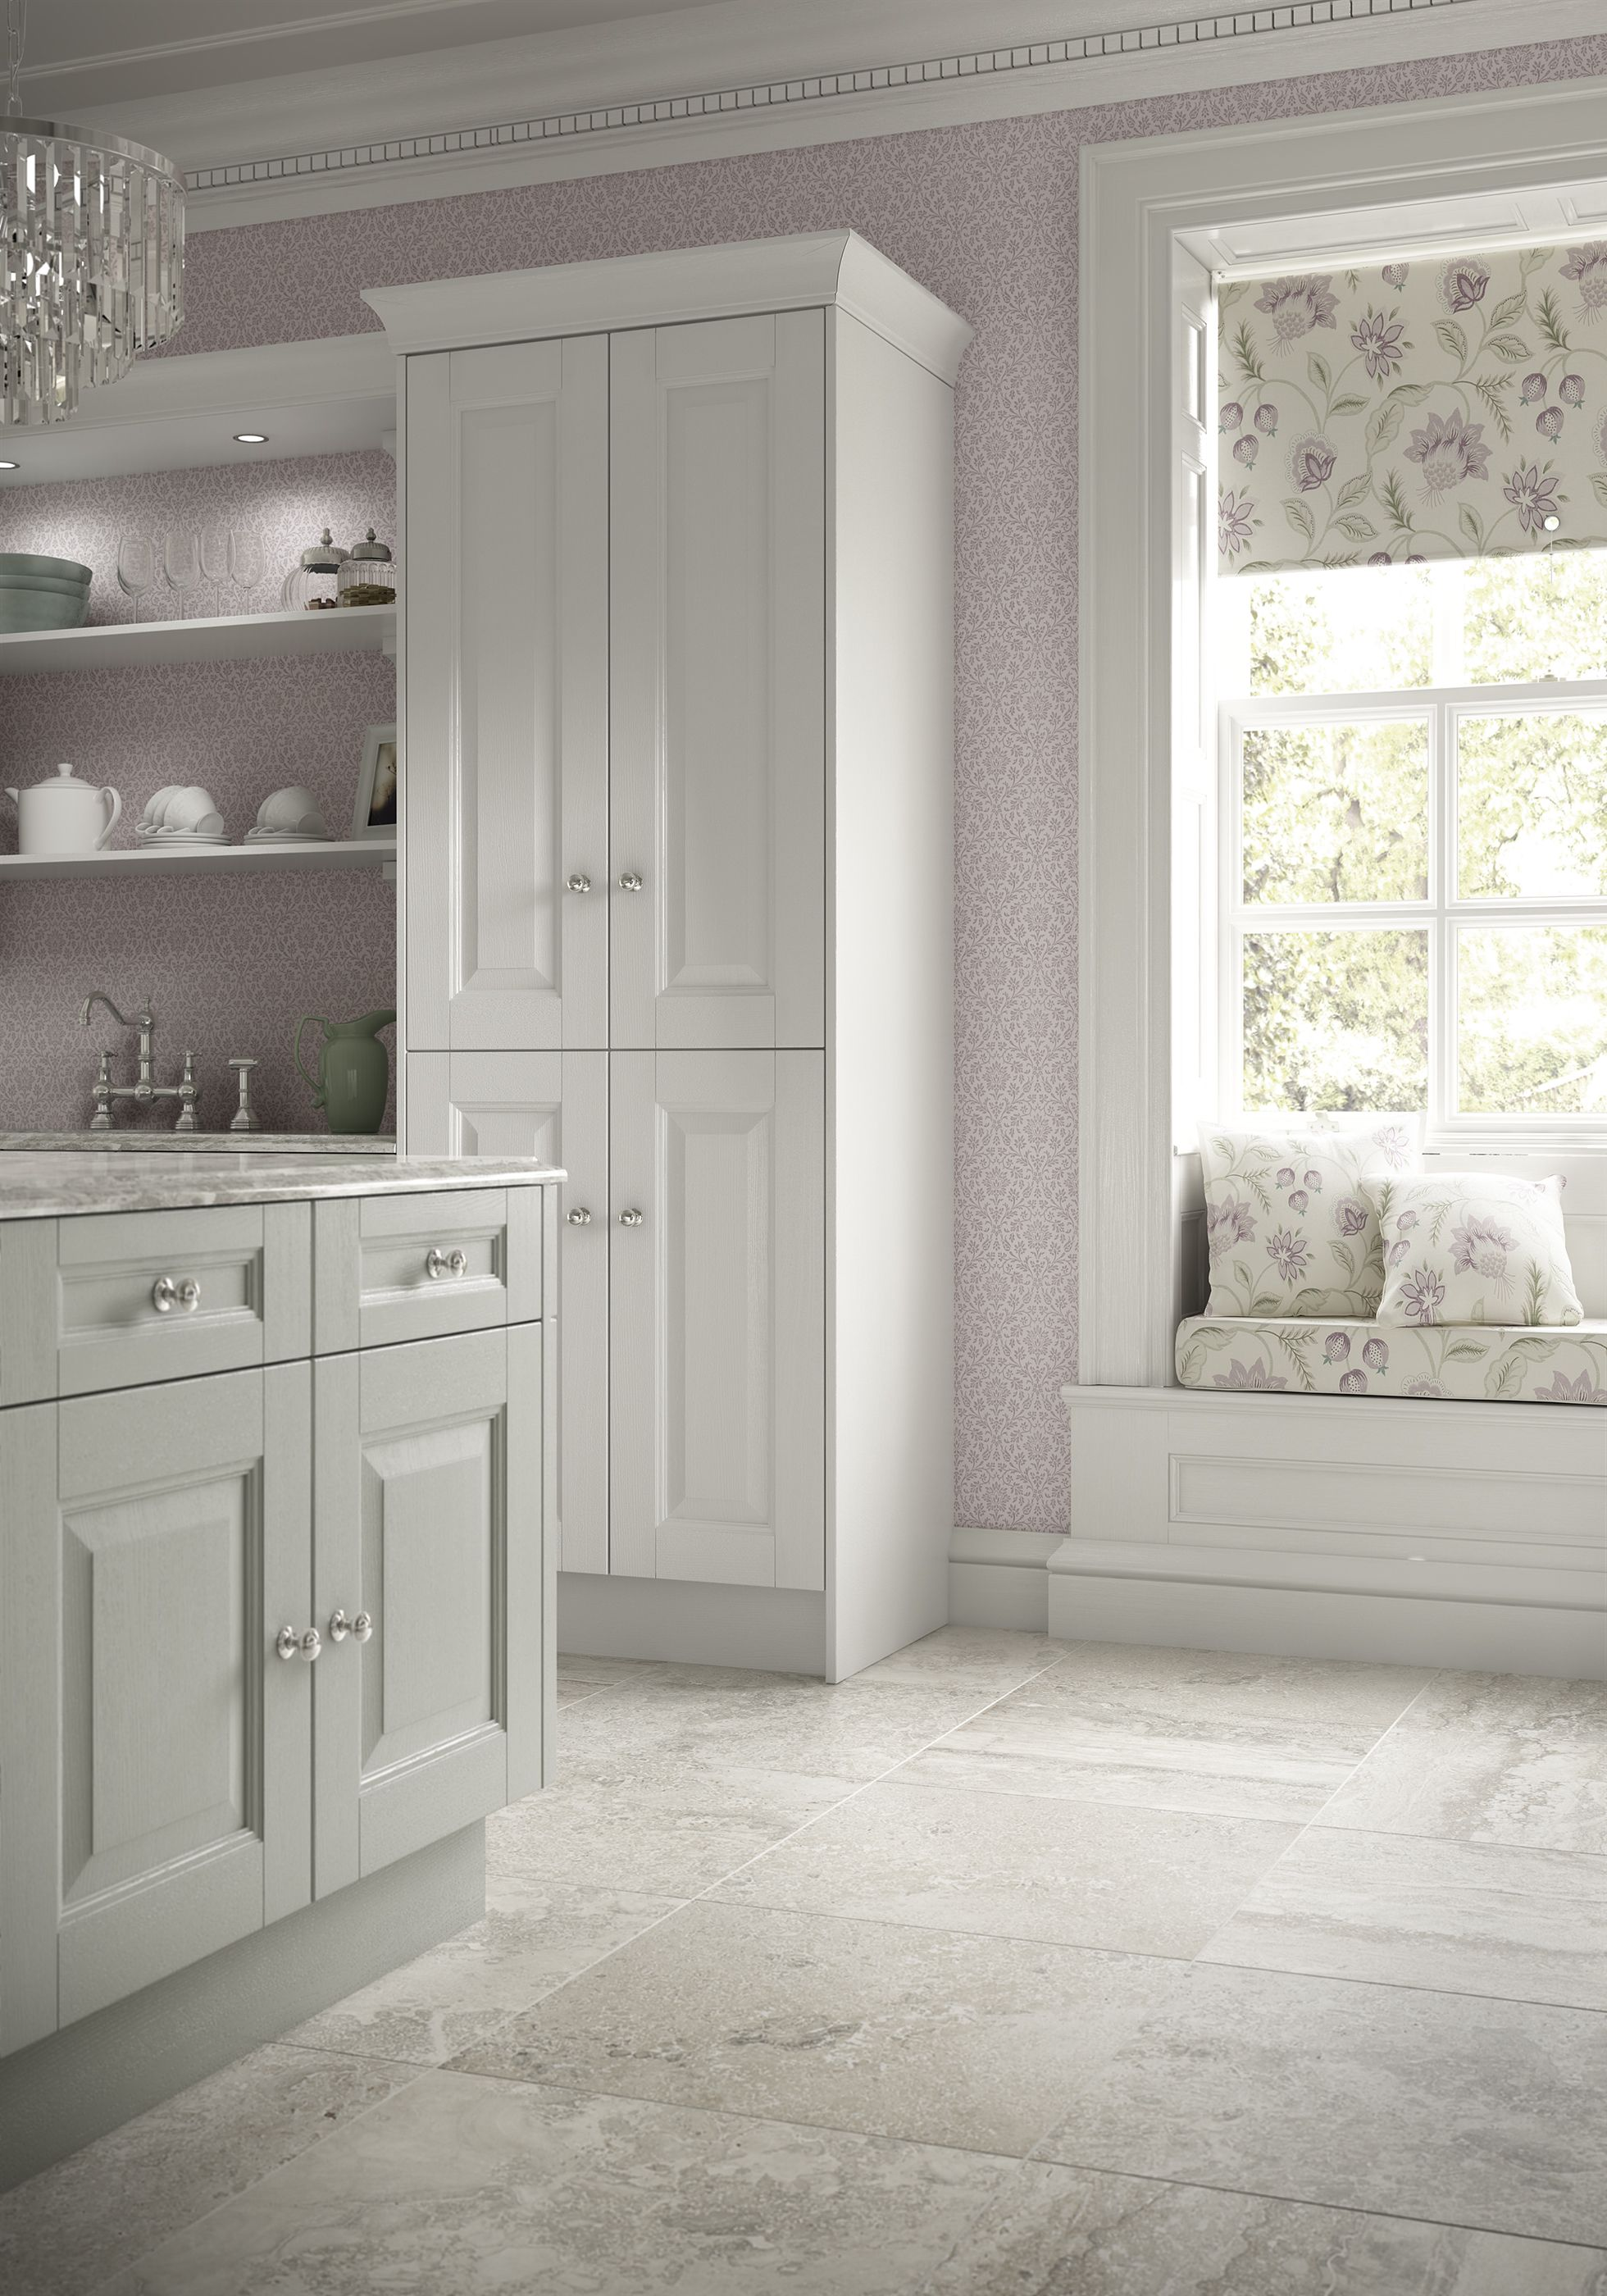 Inspired by kitchens featured in classic period townhouses, Bedale ...